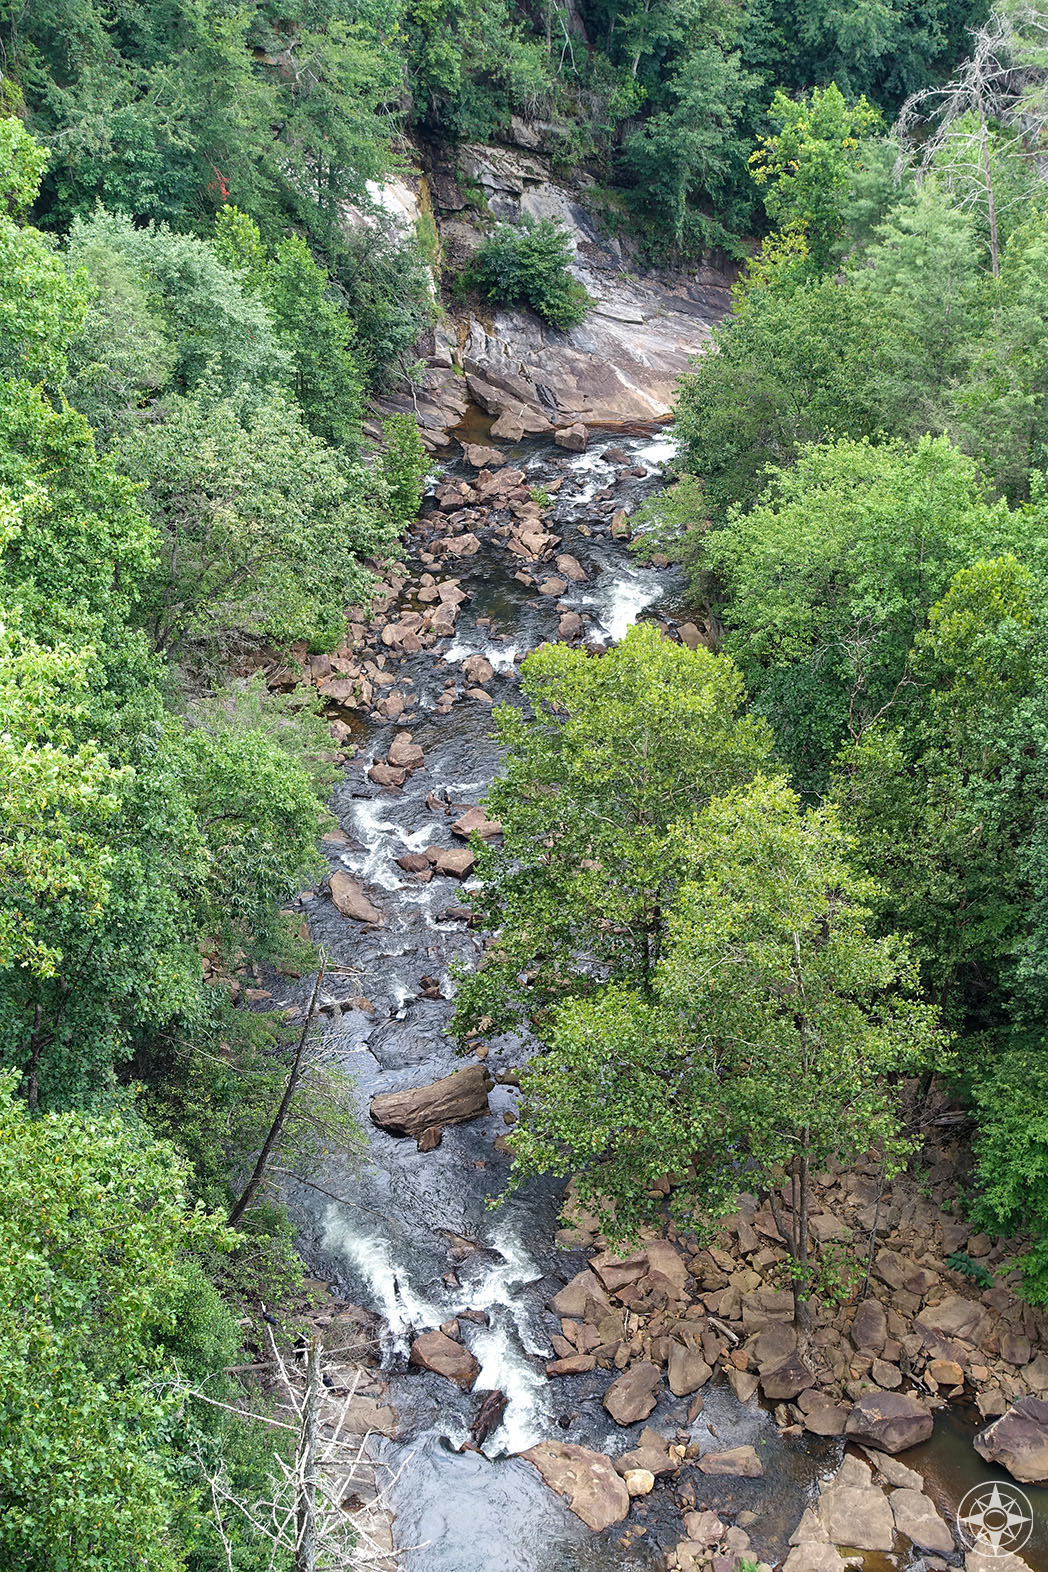 View down to the Tallulah River from the top of the dam and sidewalk along Highway 23